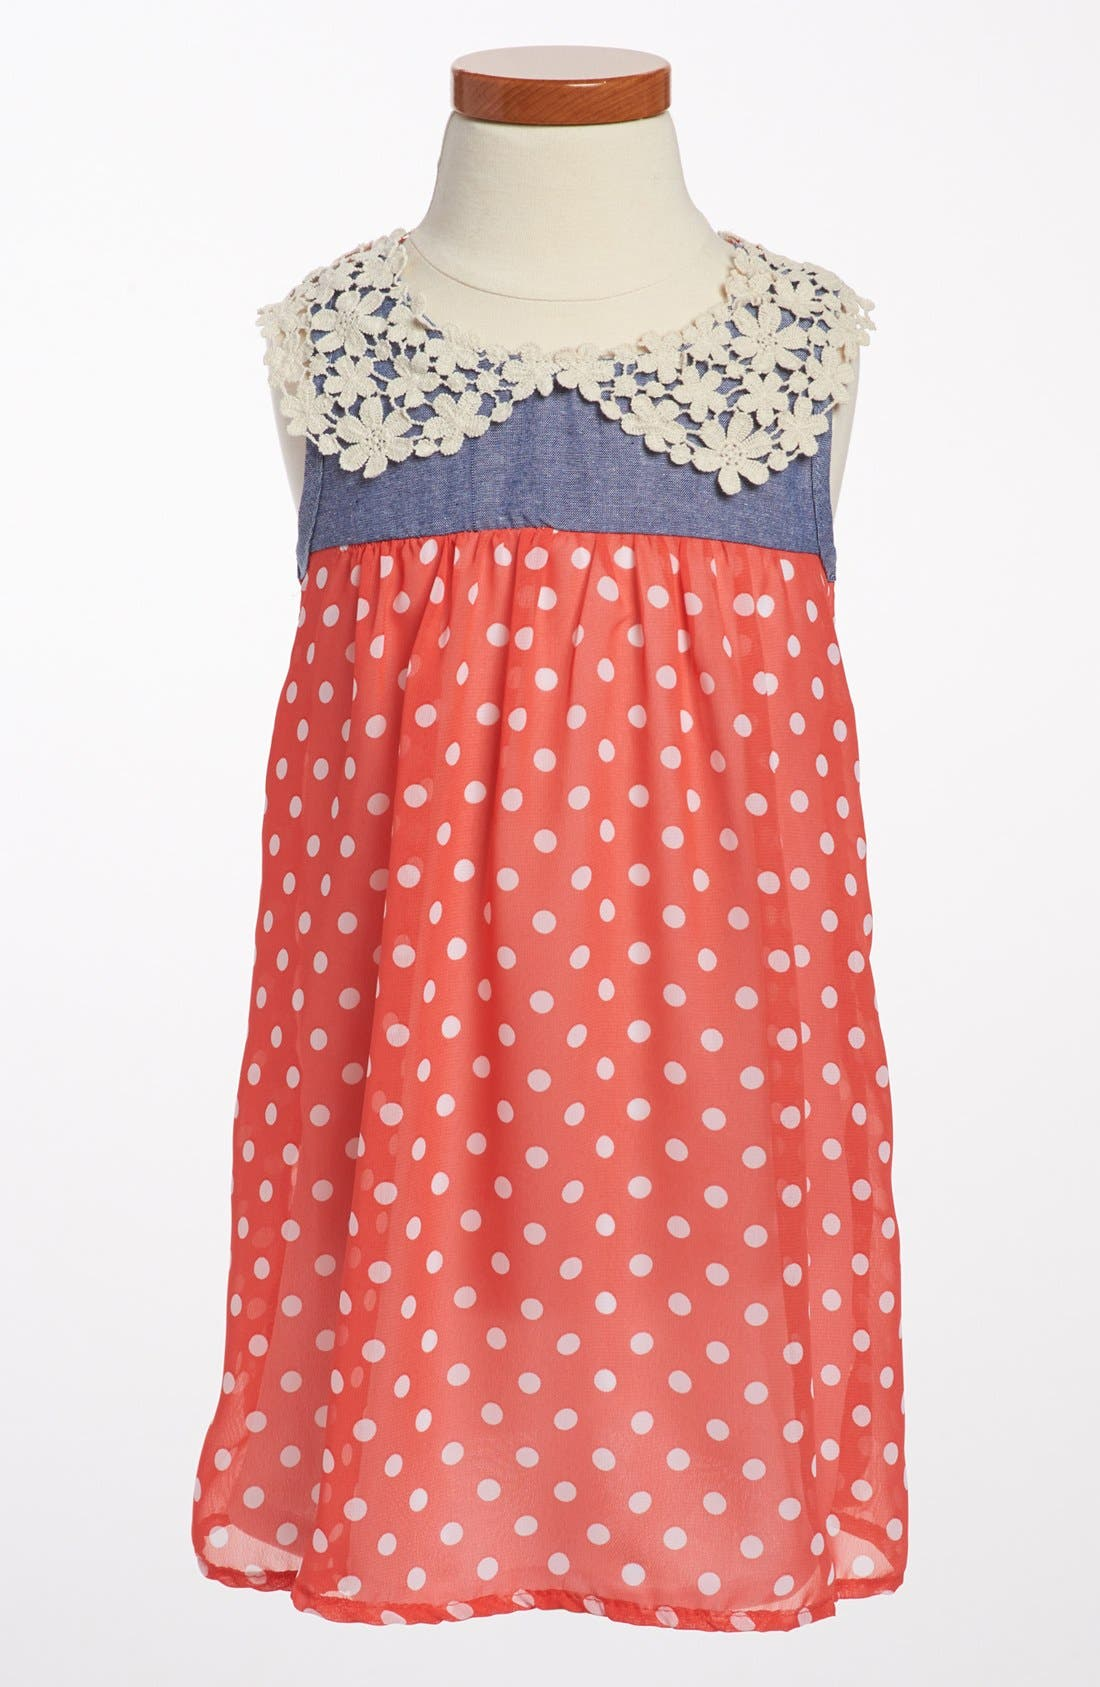 Alternate Image 1 Selected - Jenna & Jessie Polka Dot Chiffon Dress (Toddler Girls)